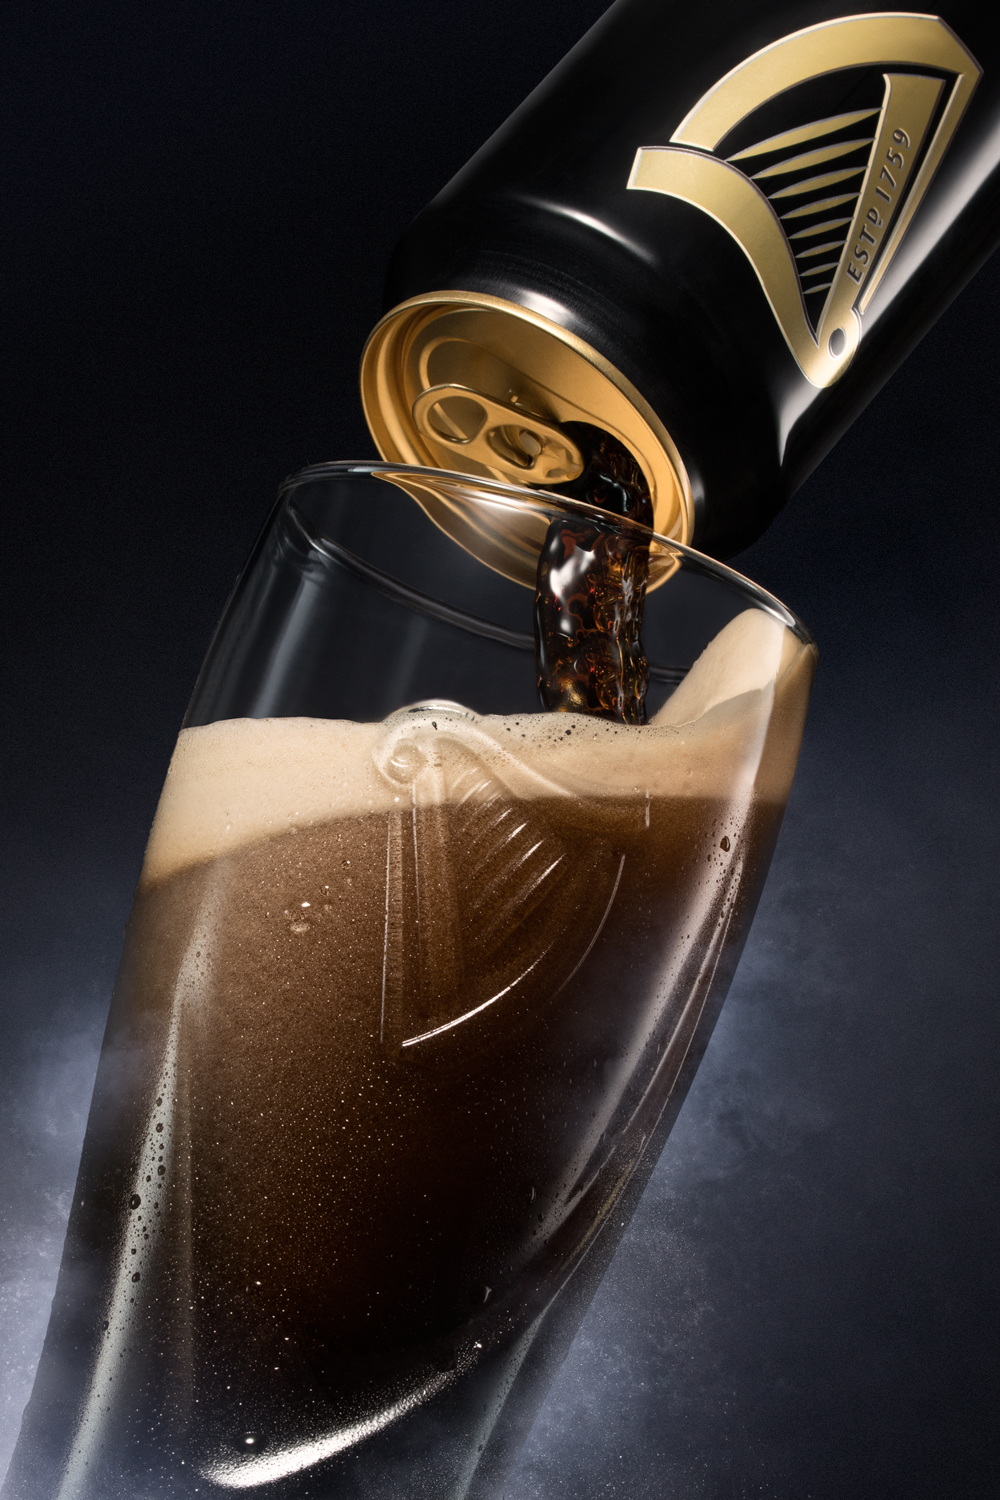 lettstudio_photography_guiness_beer_splash_web.jpg